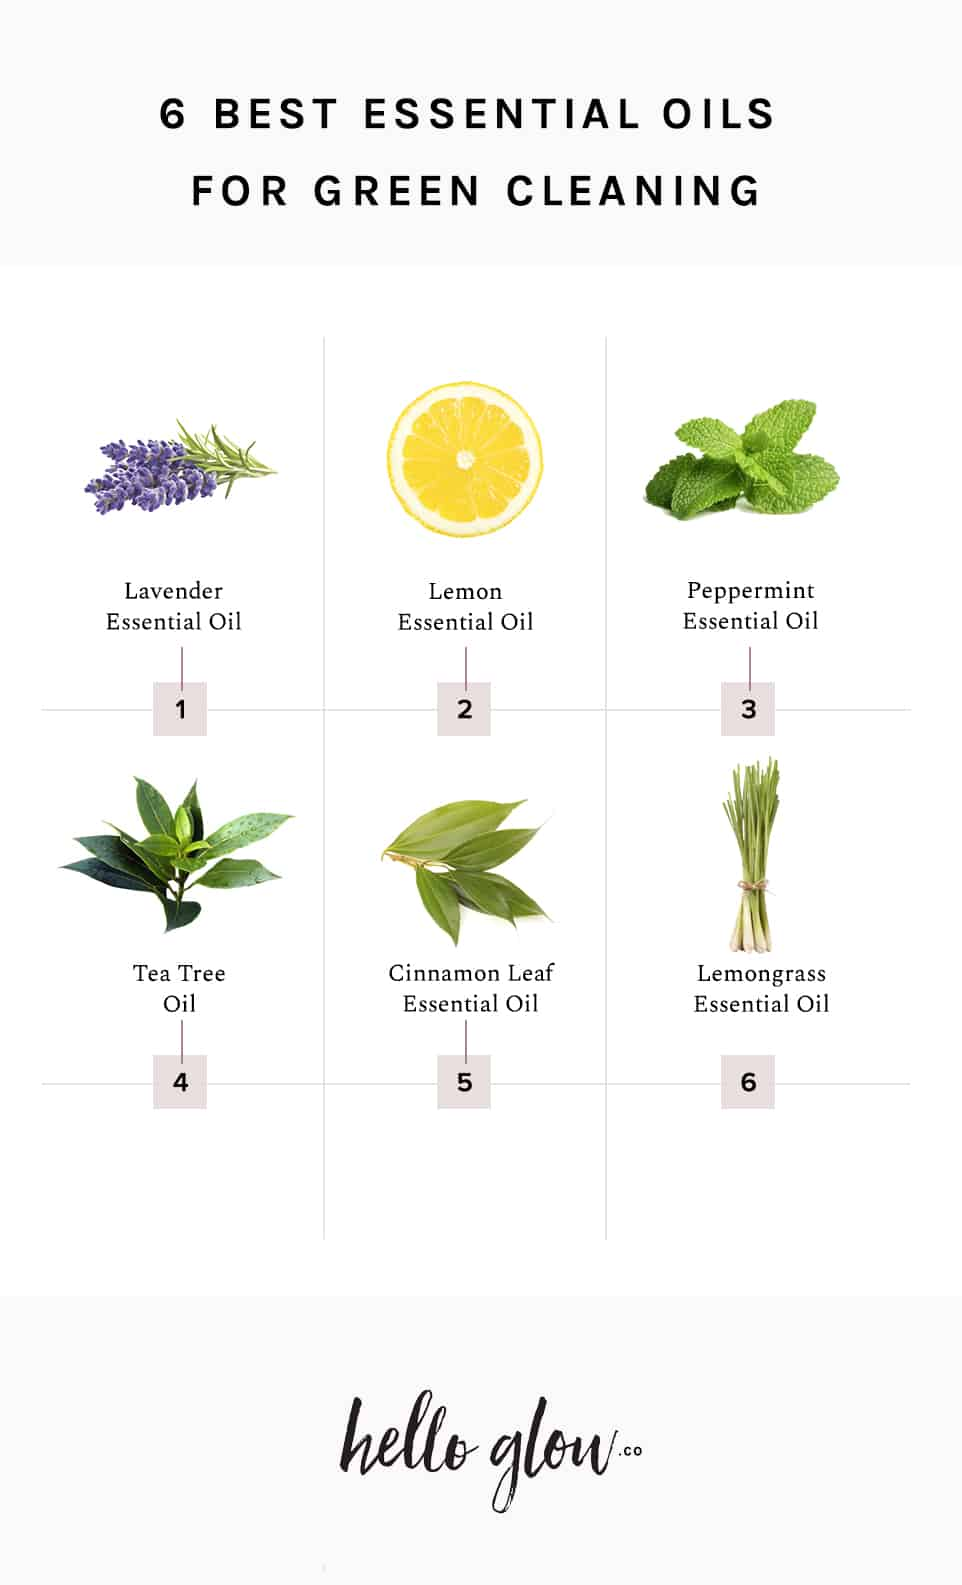 6 Best Essential Oils for Green Cleaning - HelloGlow.co